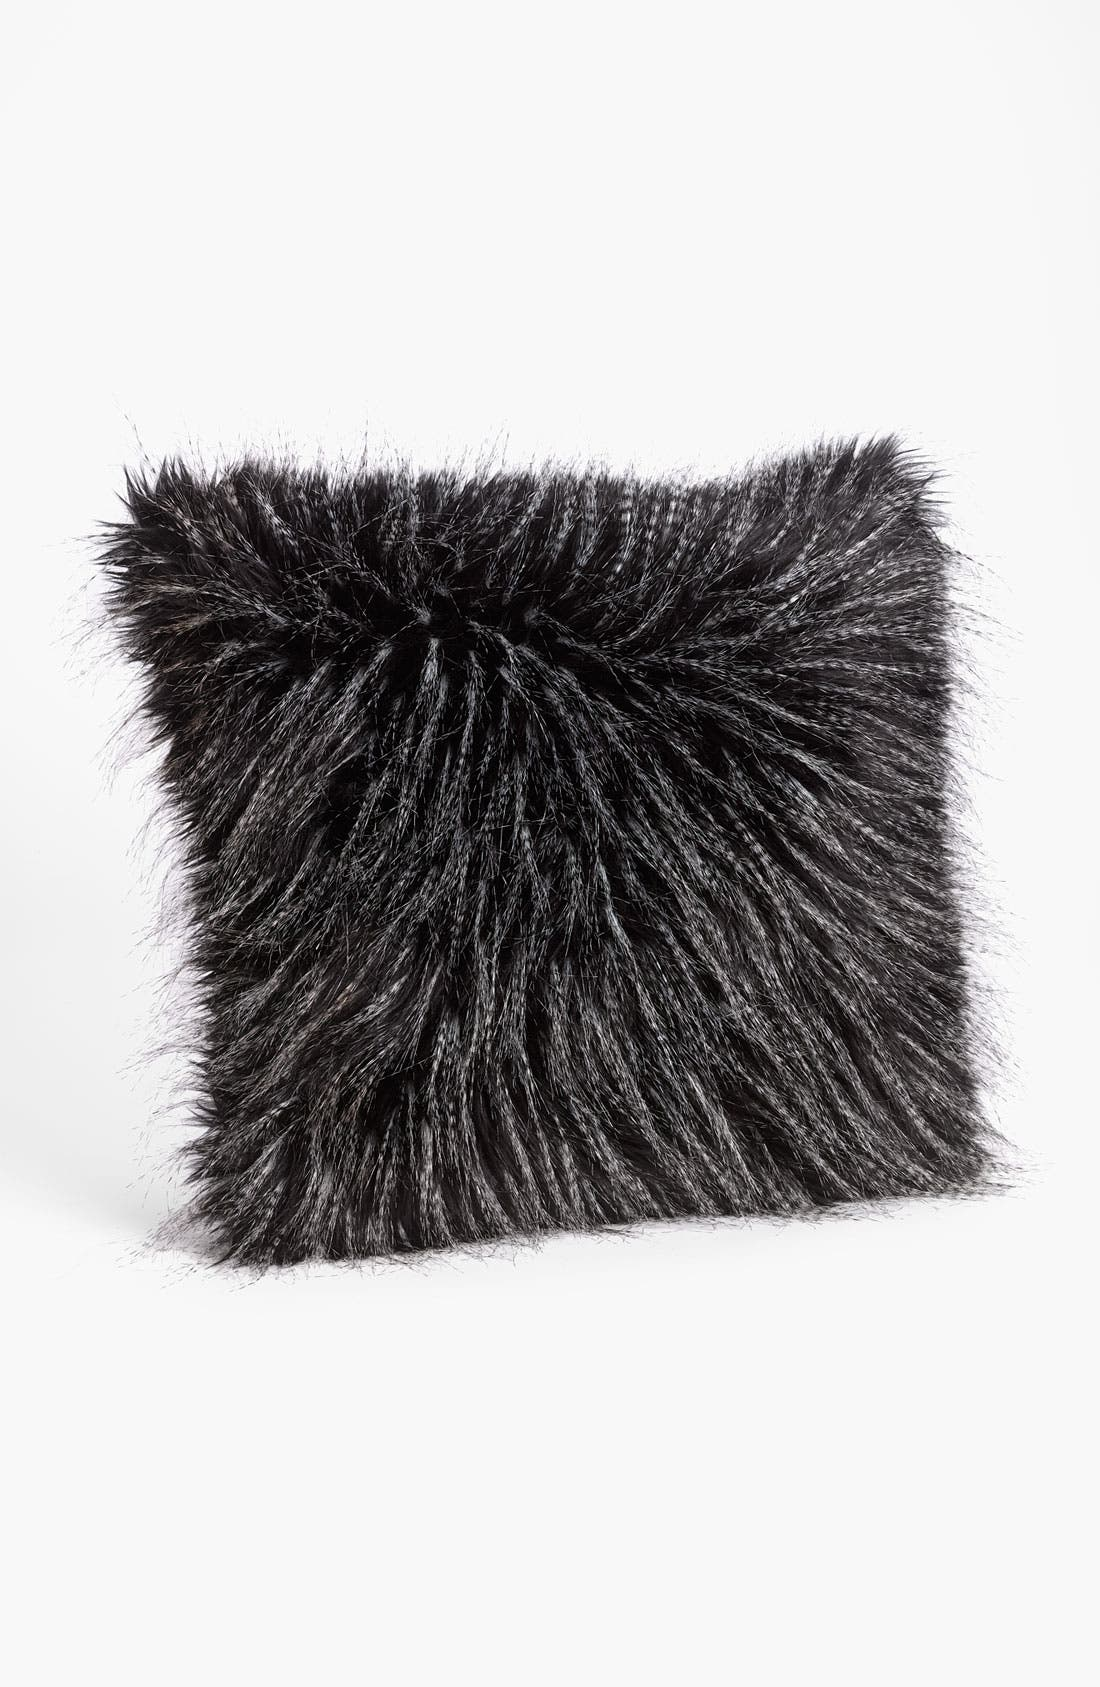 Alternate Image 1 Selected - Brentwood Originals Faux Mink Fur Pillow